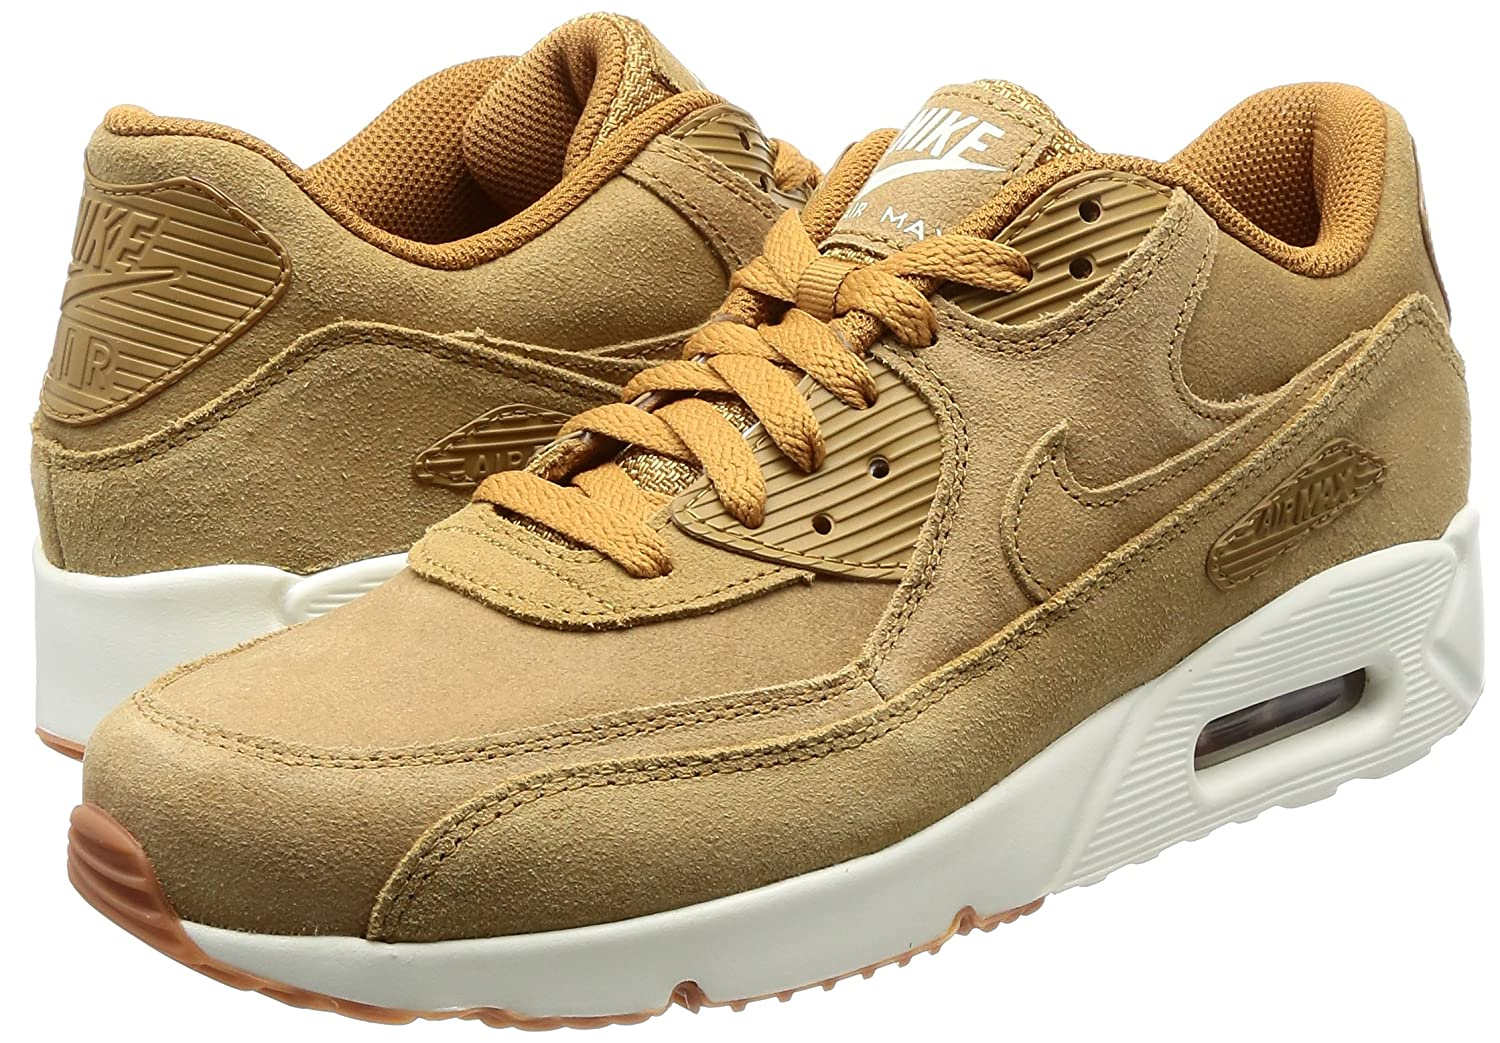 premium selection 7ff26 f5e90 Amazon.com   Nike Mens Air Max 90 Ultra 2.0 LTR Running Shoe (8.5)   Road  Running